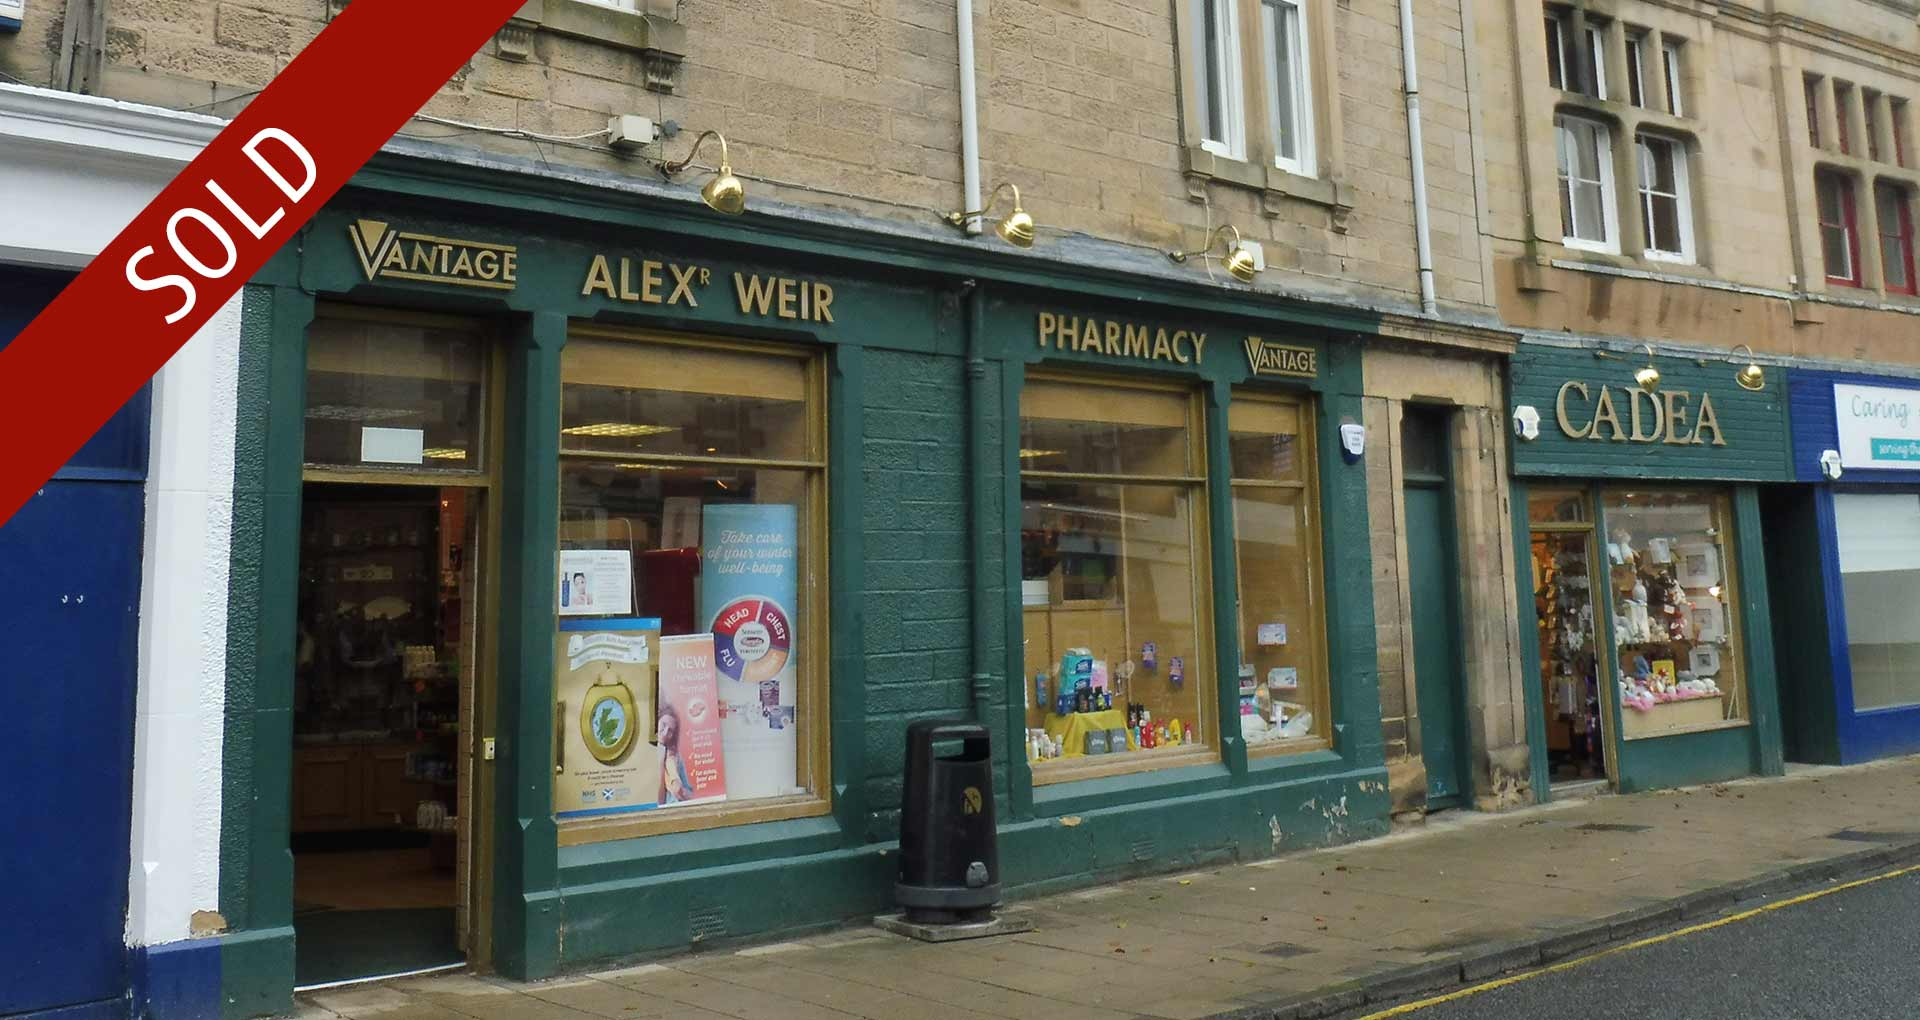 Pharmacy Sale – A Weir, Scotland achieved £1.46 in the £